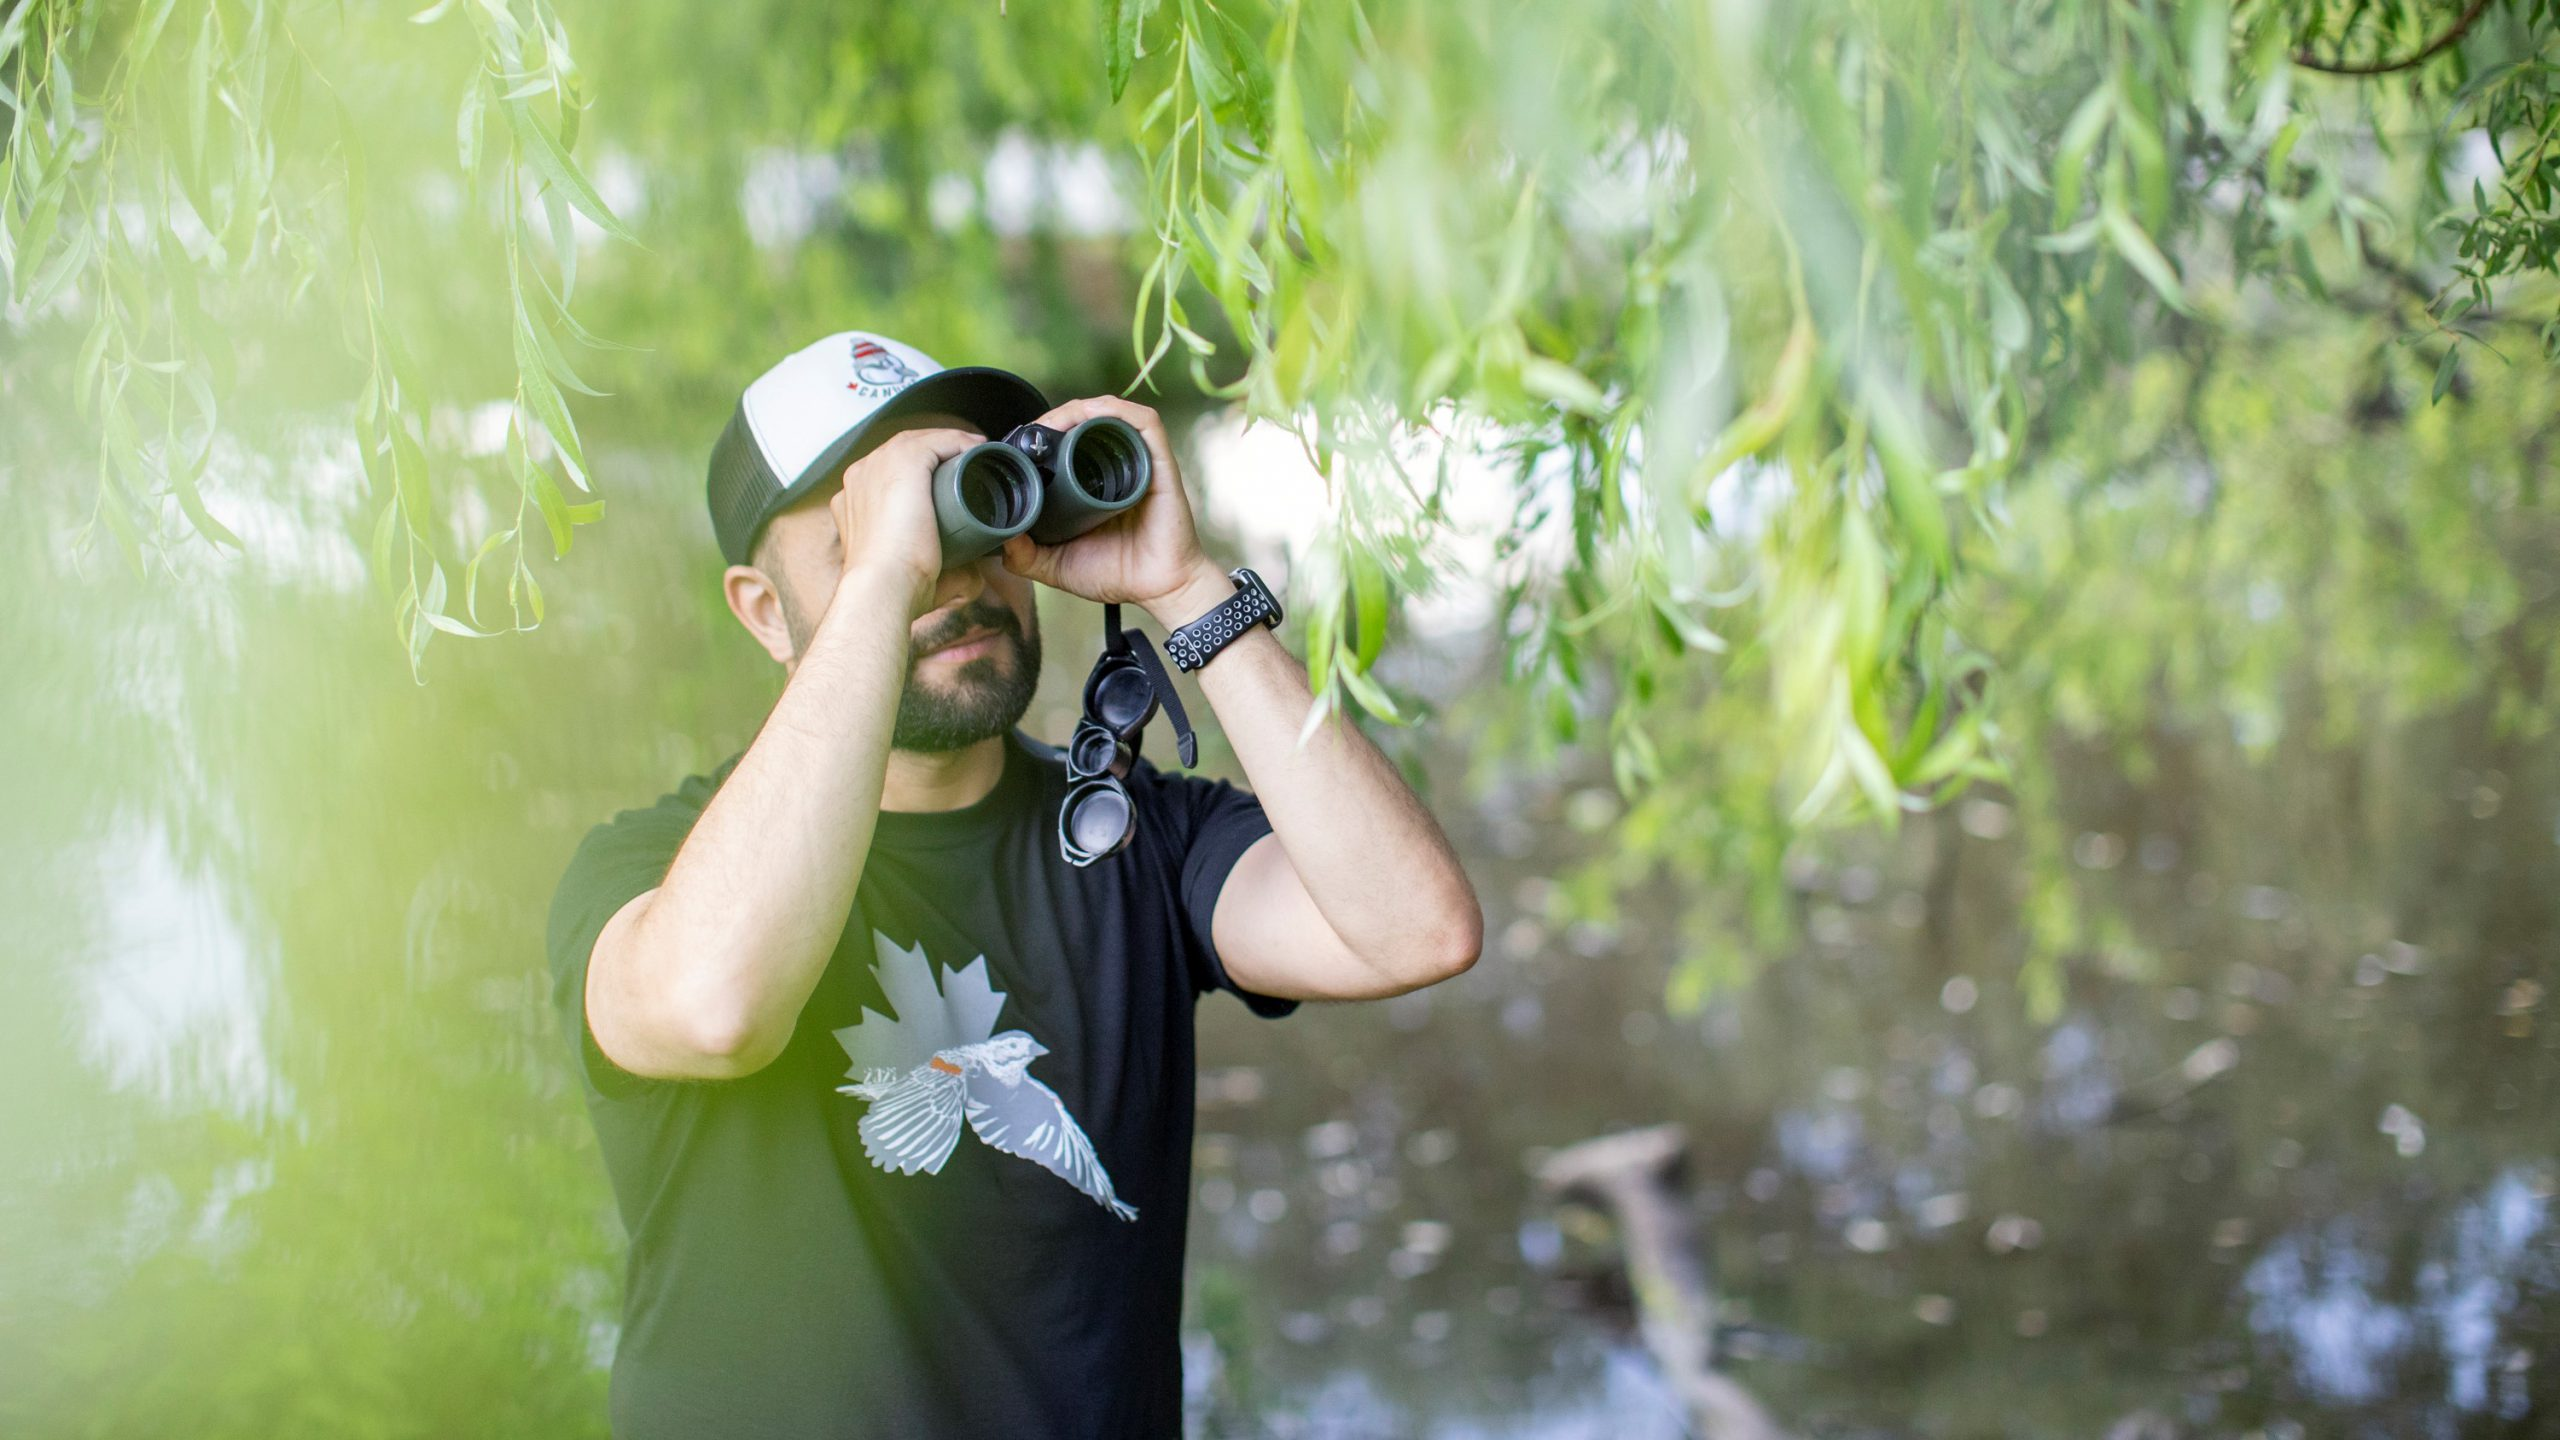 Yousif Attia out for a bird walk in Vancouver's Queen Elizabeth Park on June 24, 2021. Alia Youssef/The Globe and Mail.